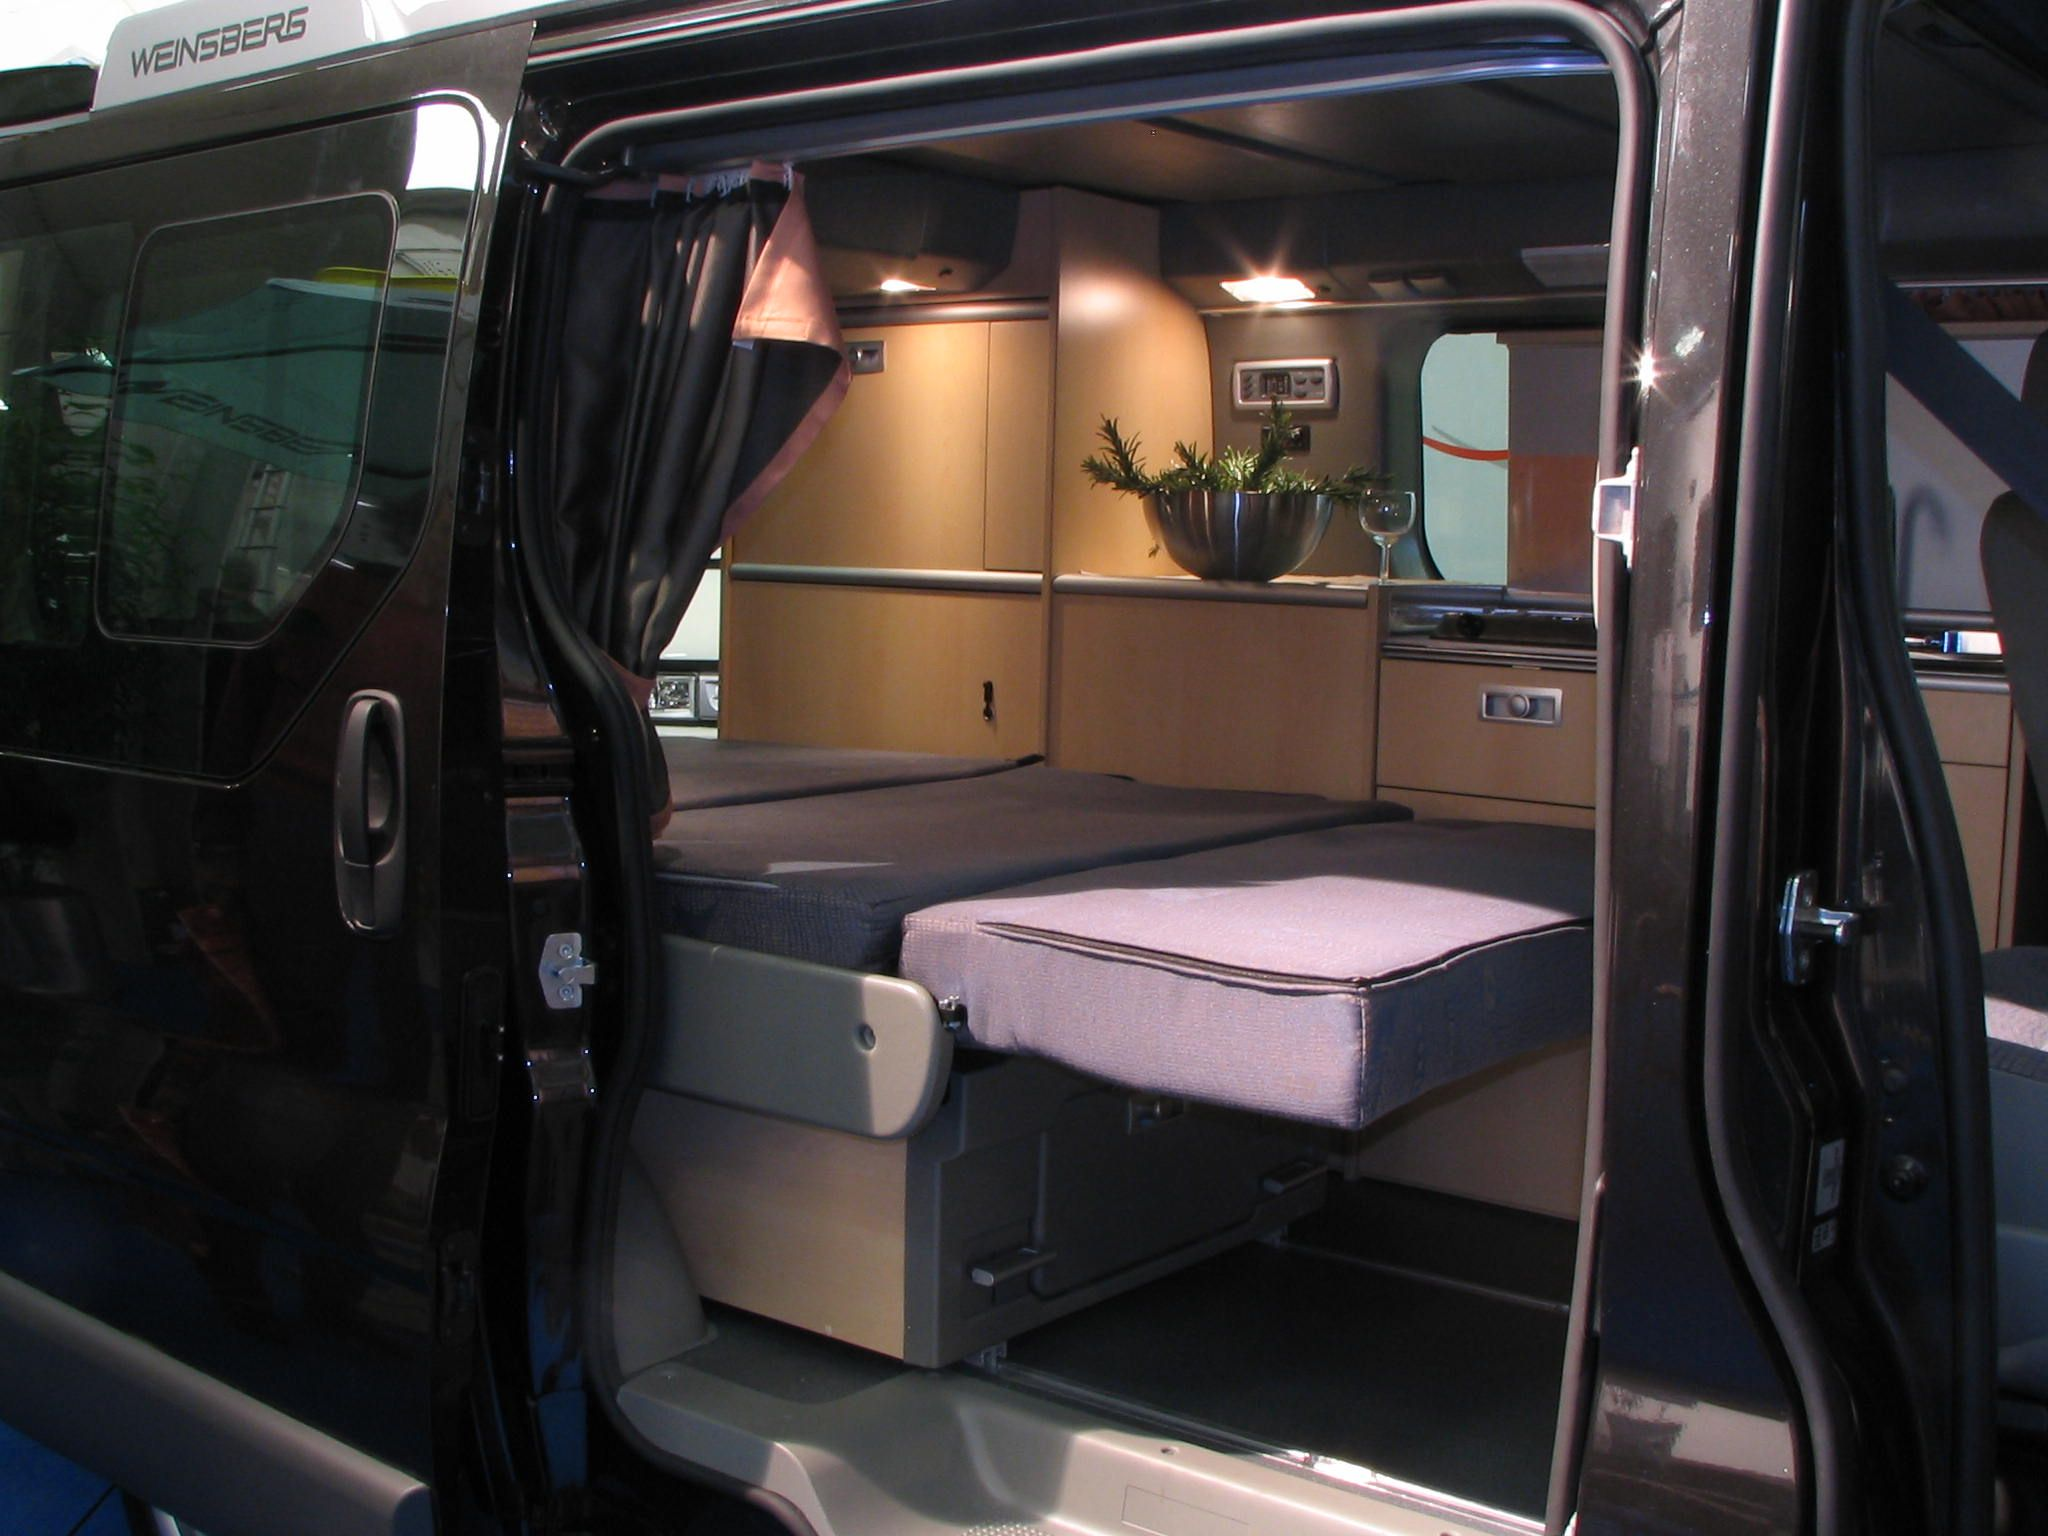 renault trafic camper conversion 2015 our dreams. Black Bedroom Furniture Sets. Home Design Ideas